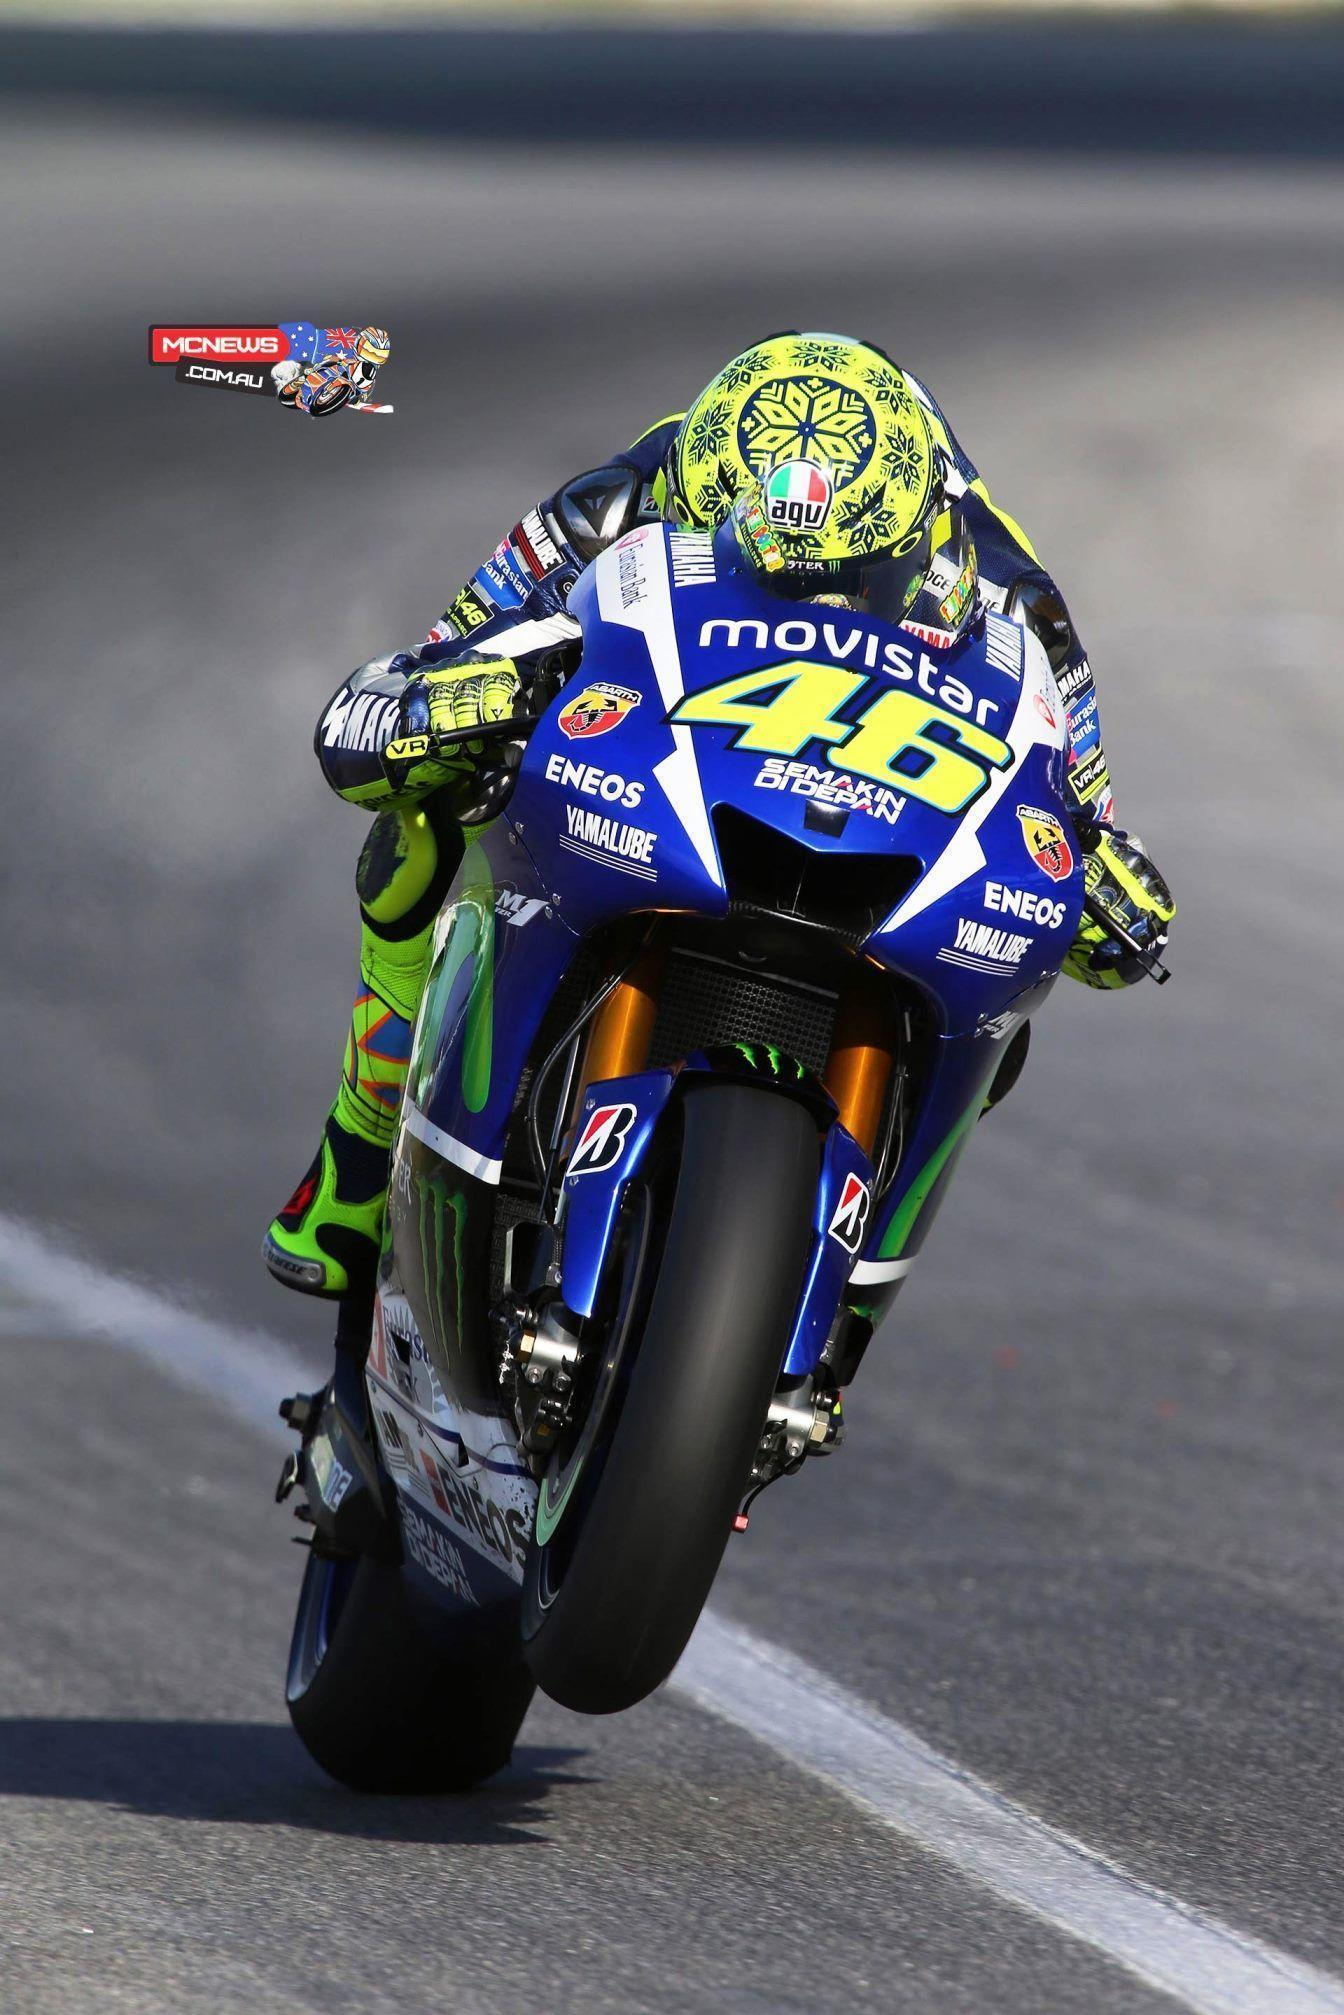 Valentino rossi wallpapers wallpaper cave valentino rossi 2015 movistar wallpapers ecosport best voltagebd Choice Image